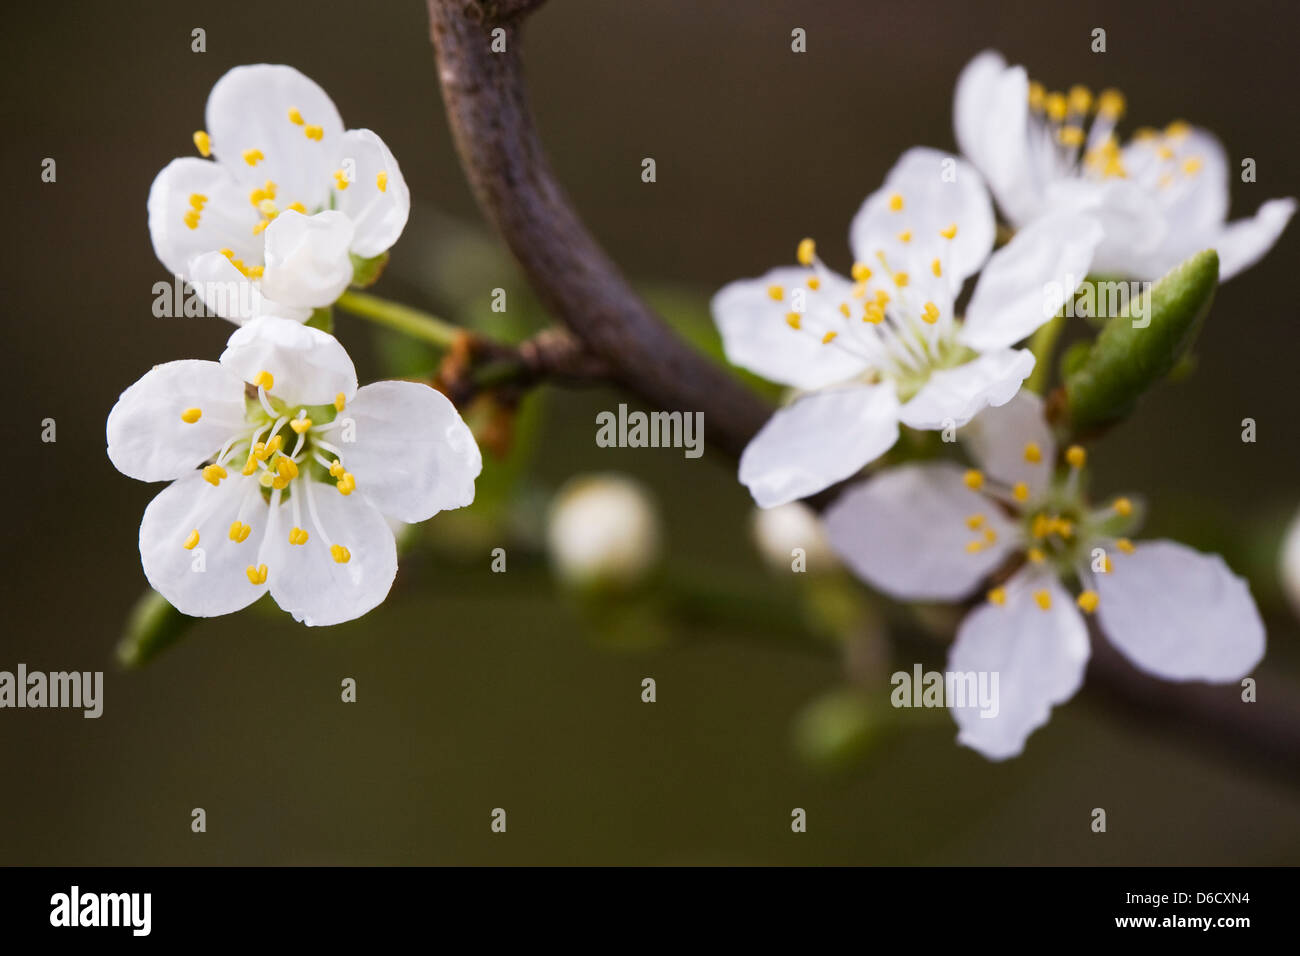 Prunus spinosa. Blackthorn blossom in the hedgerow. - Stock Image